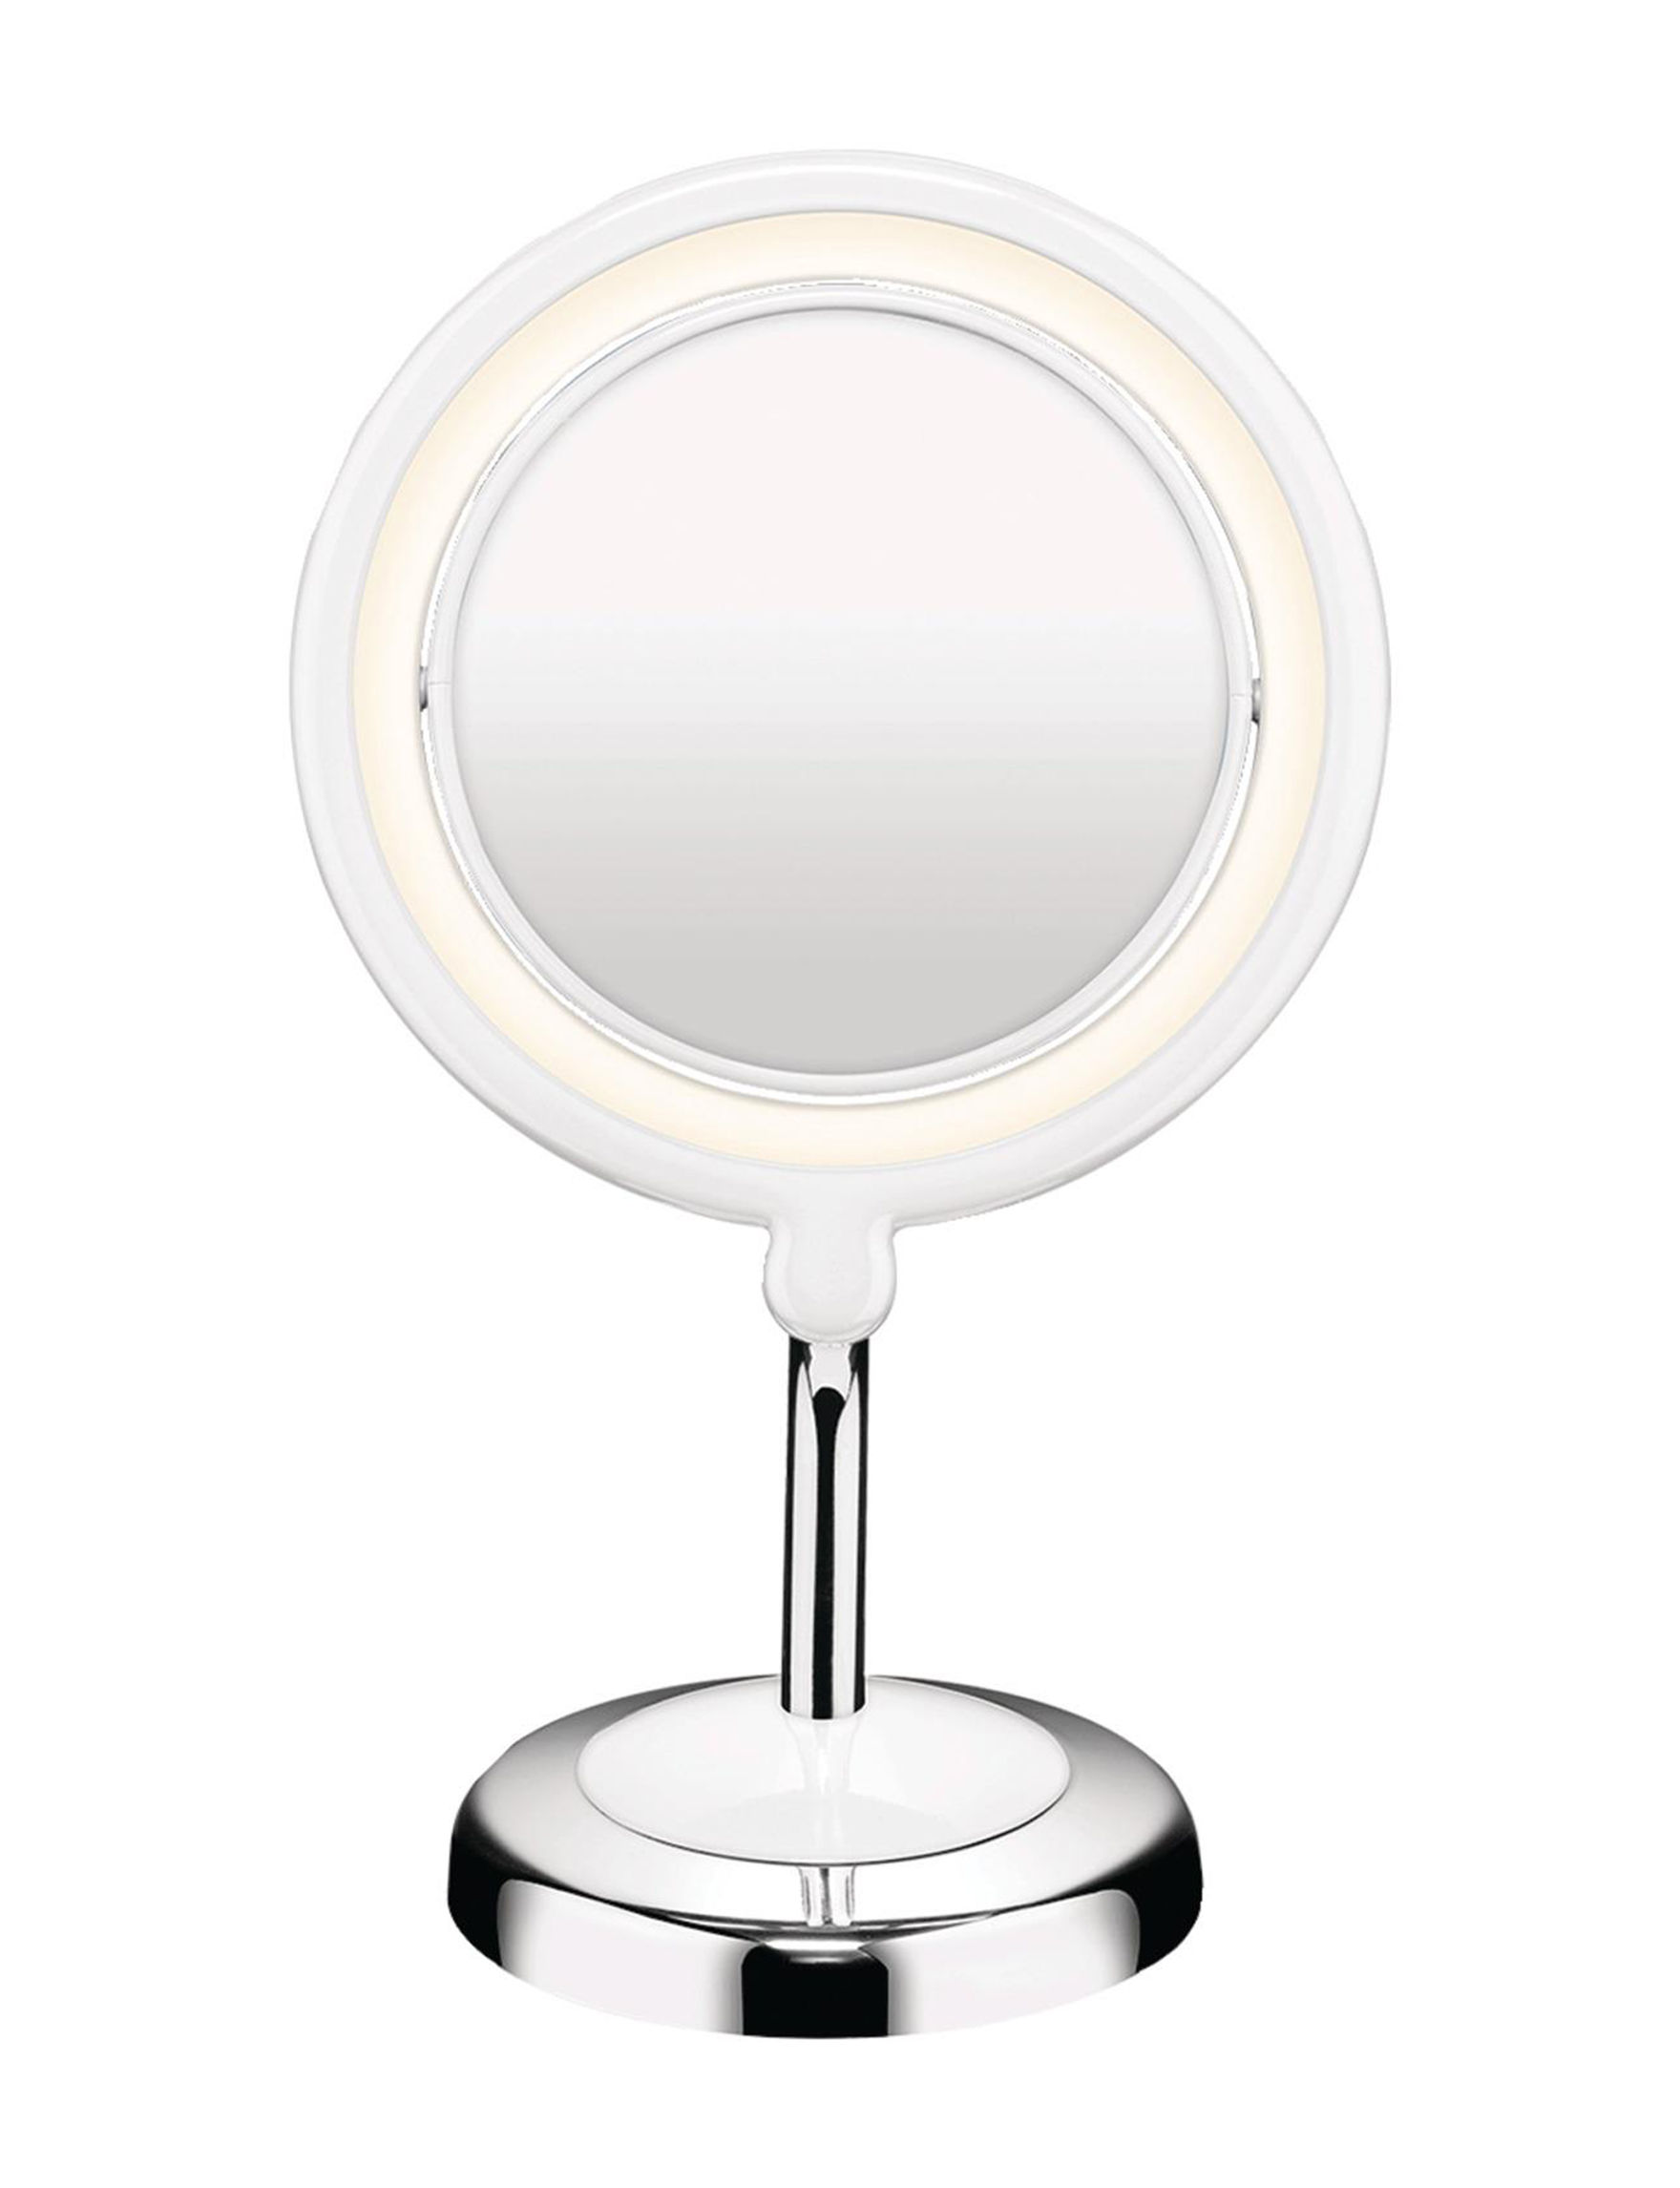 Conair White / Silver Tools & Brushes Vanity Mirrors Bath Accessories